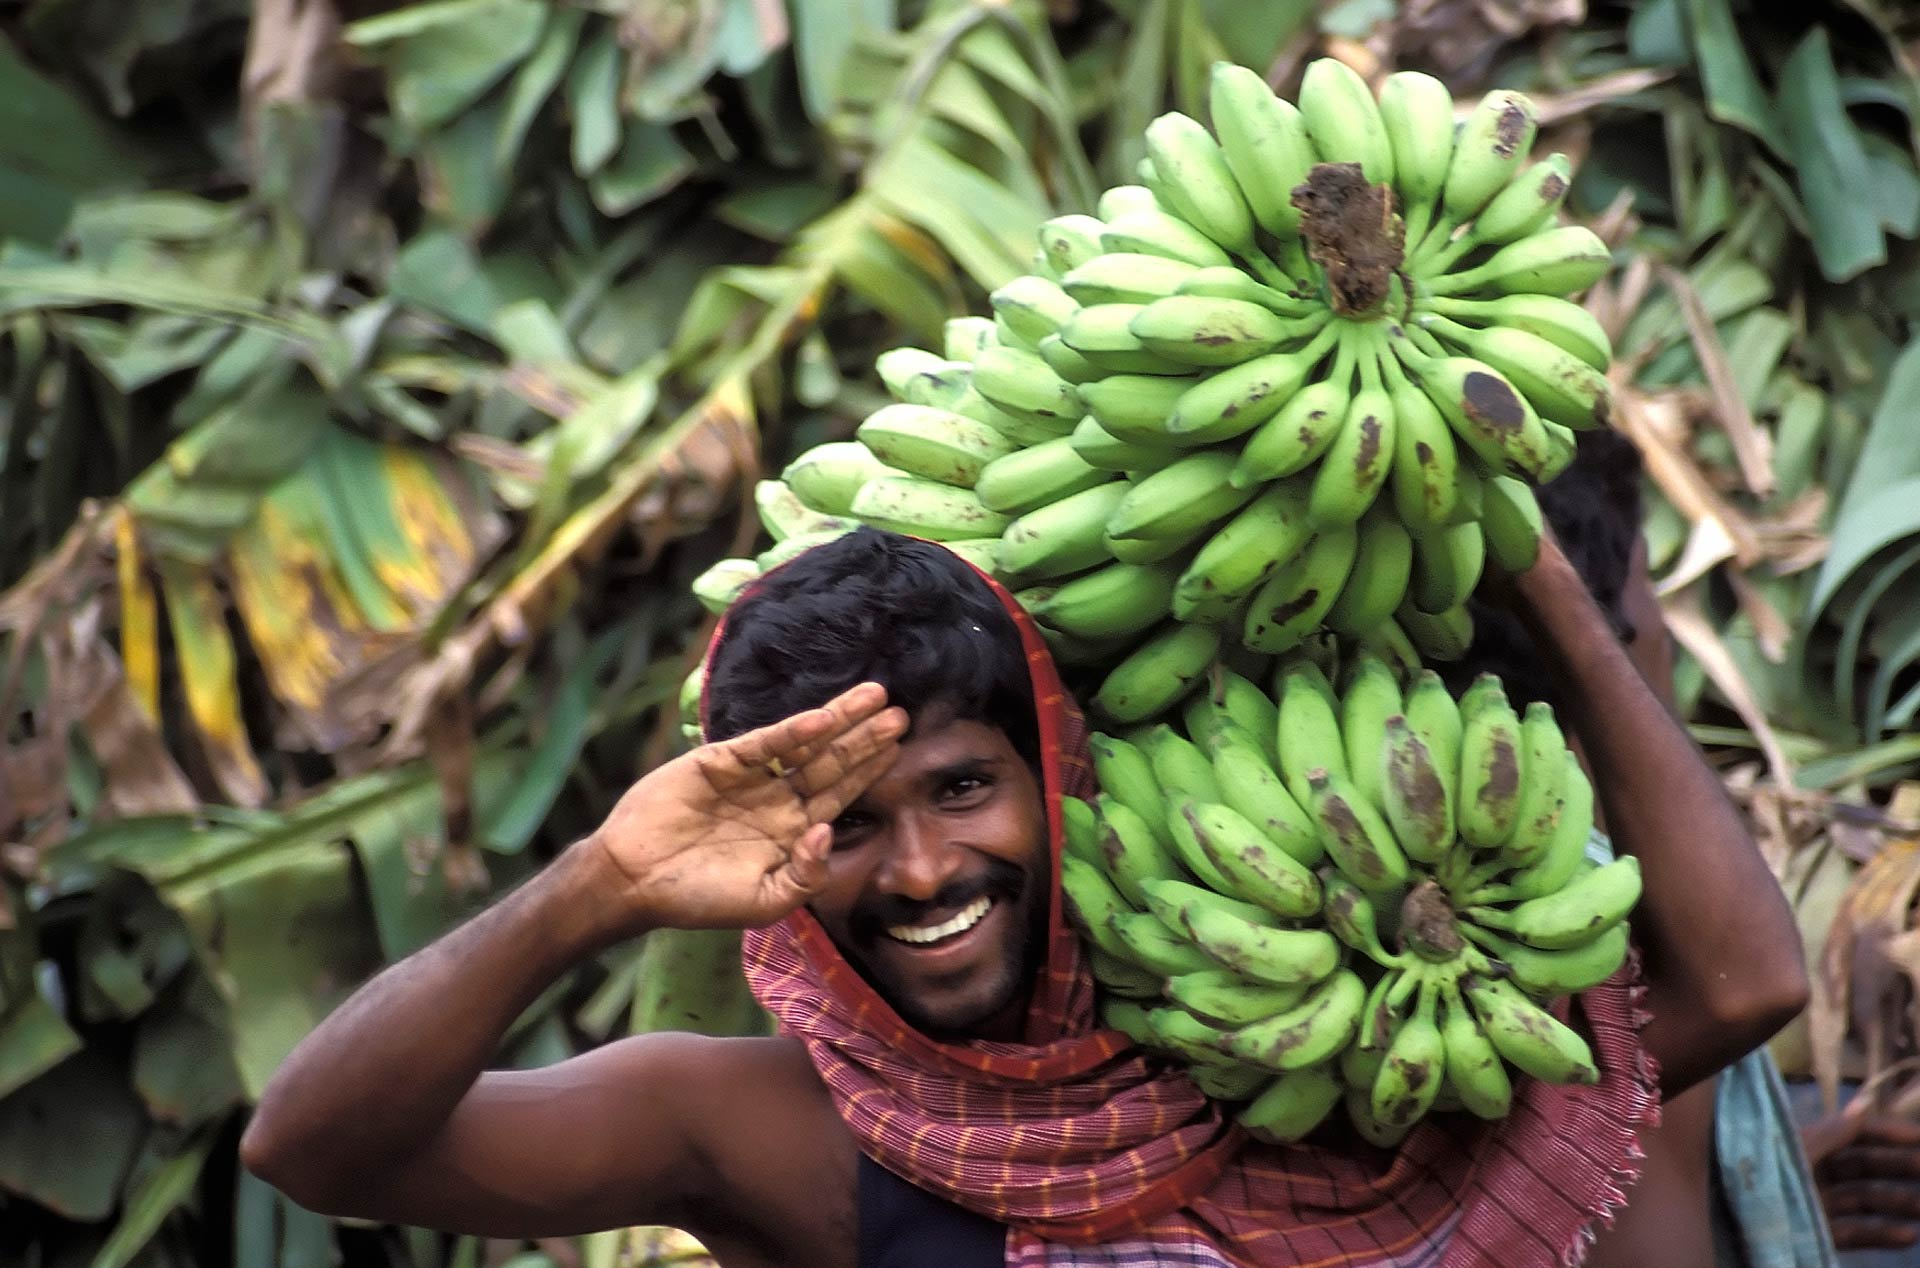 Man carrying banana bunches at the Flower & Fruit Bazaar, Chennai, Tamil Nadu, India